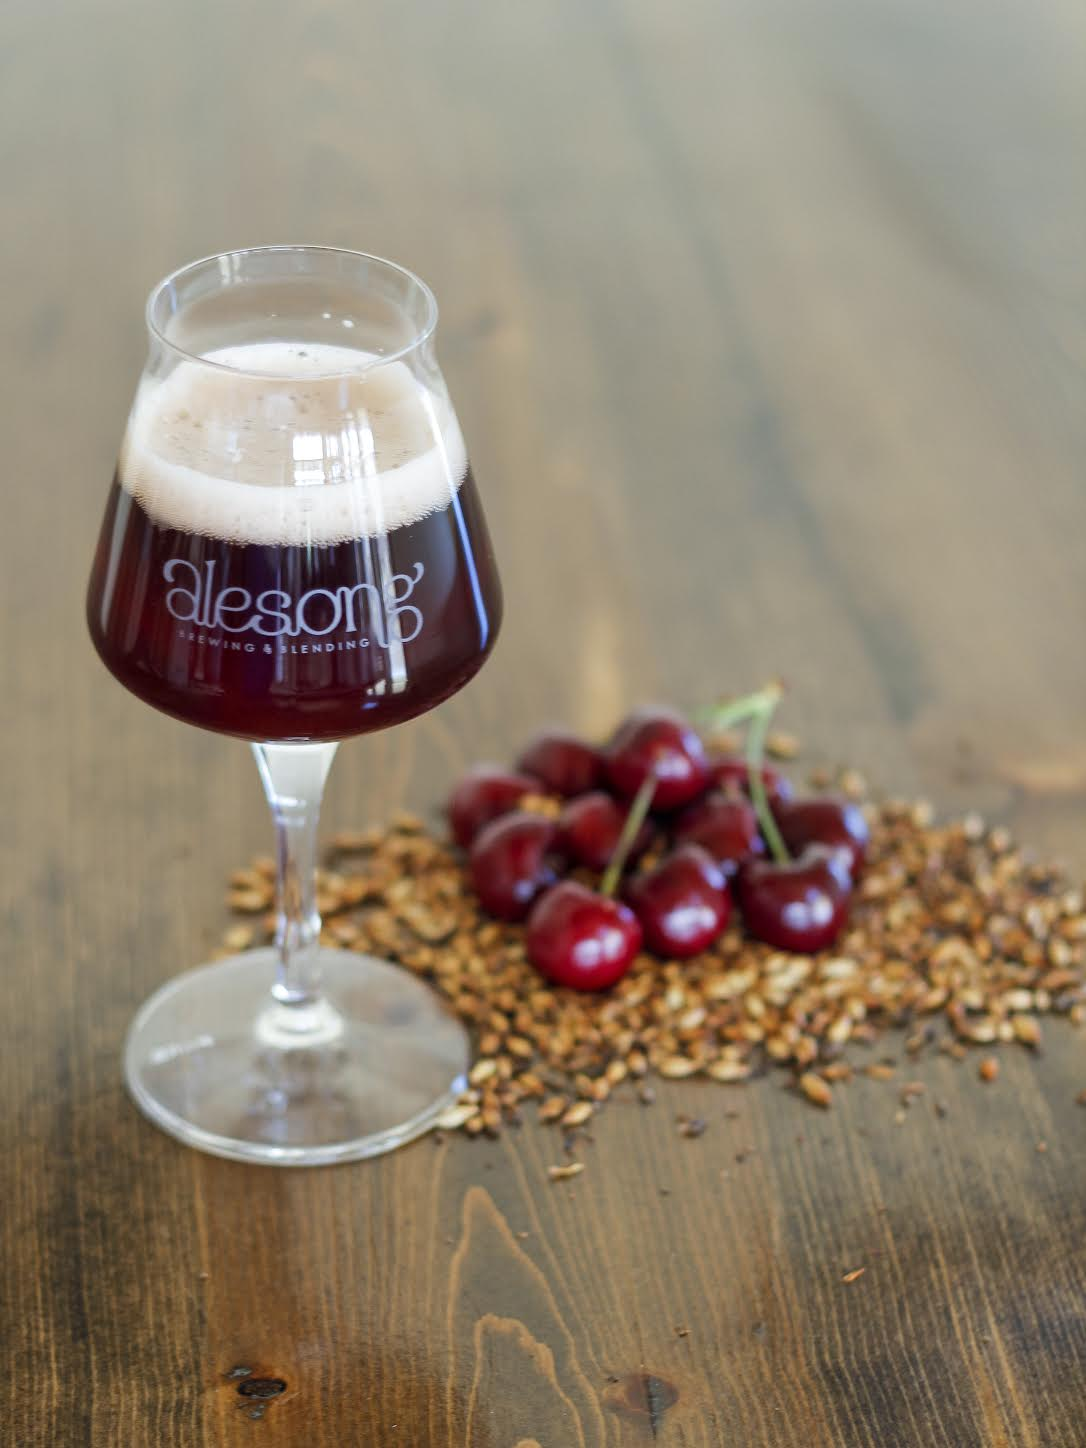 image of Cherry Parliament courtesy of Alesong Brewing & Blending